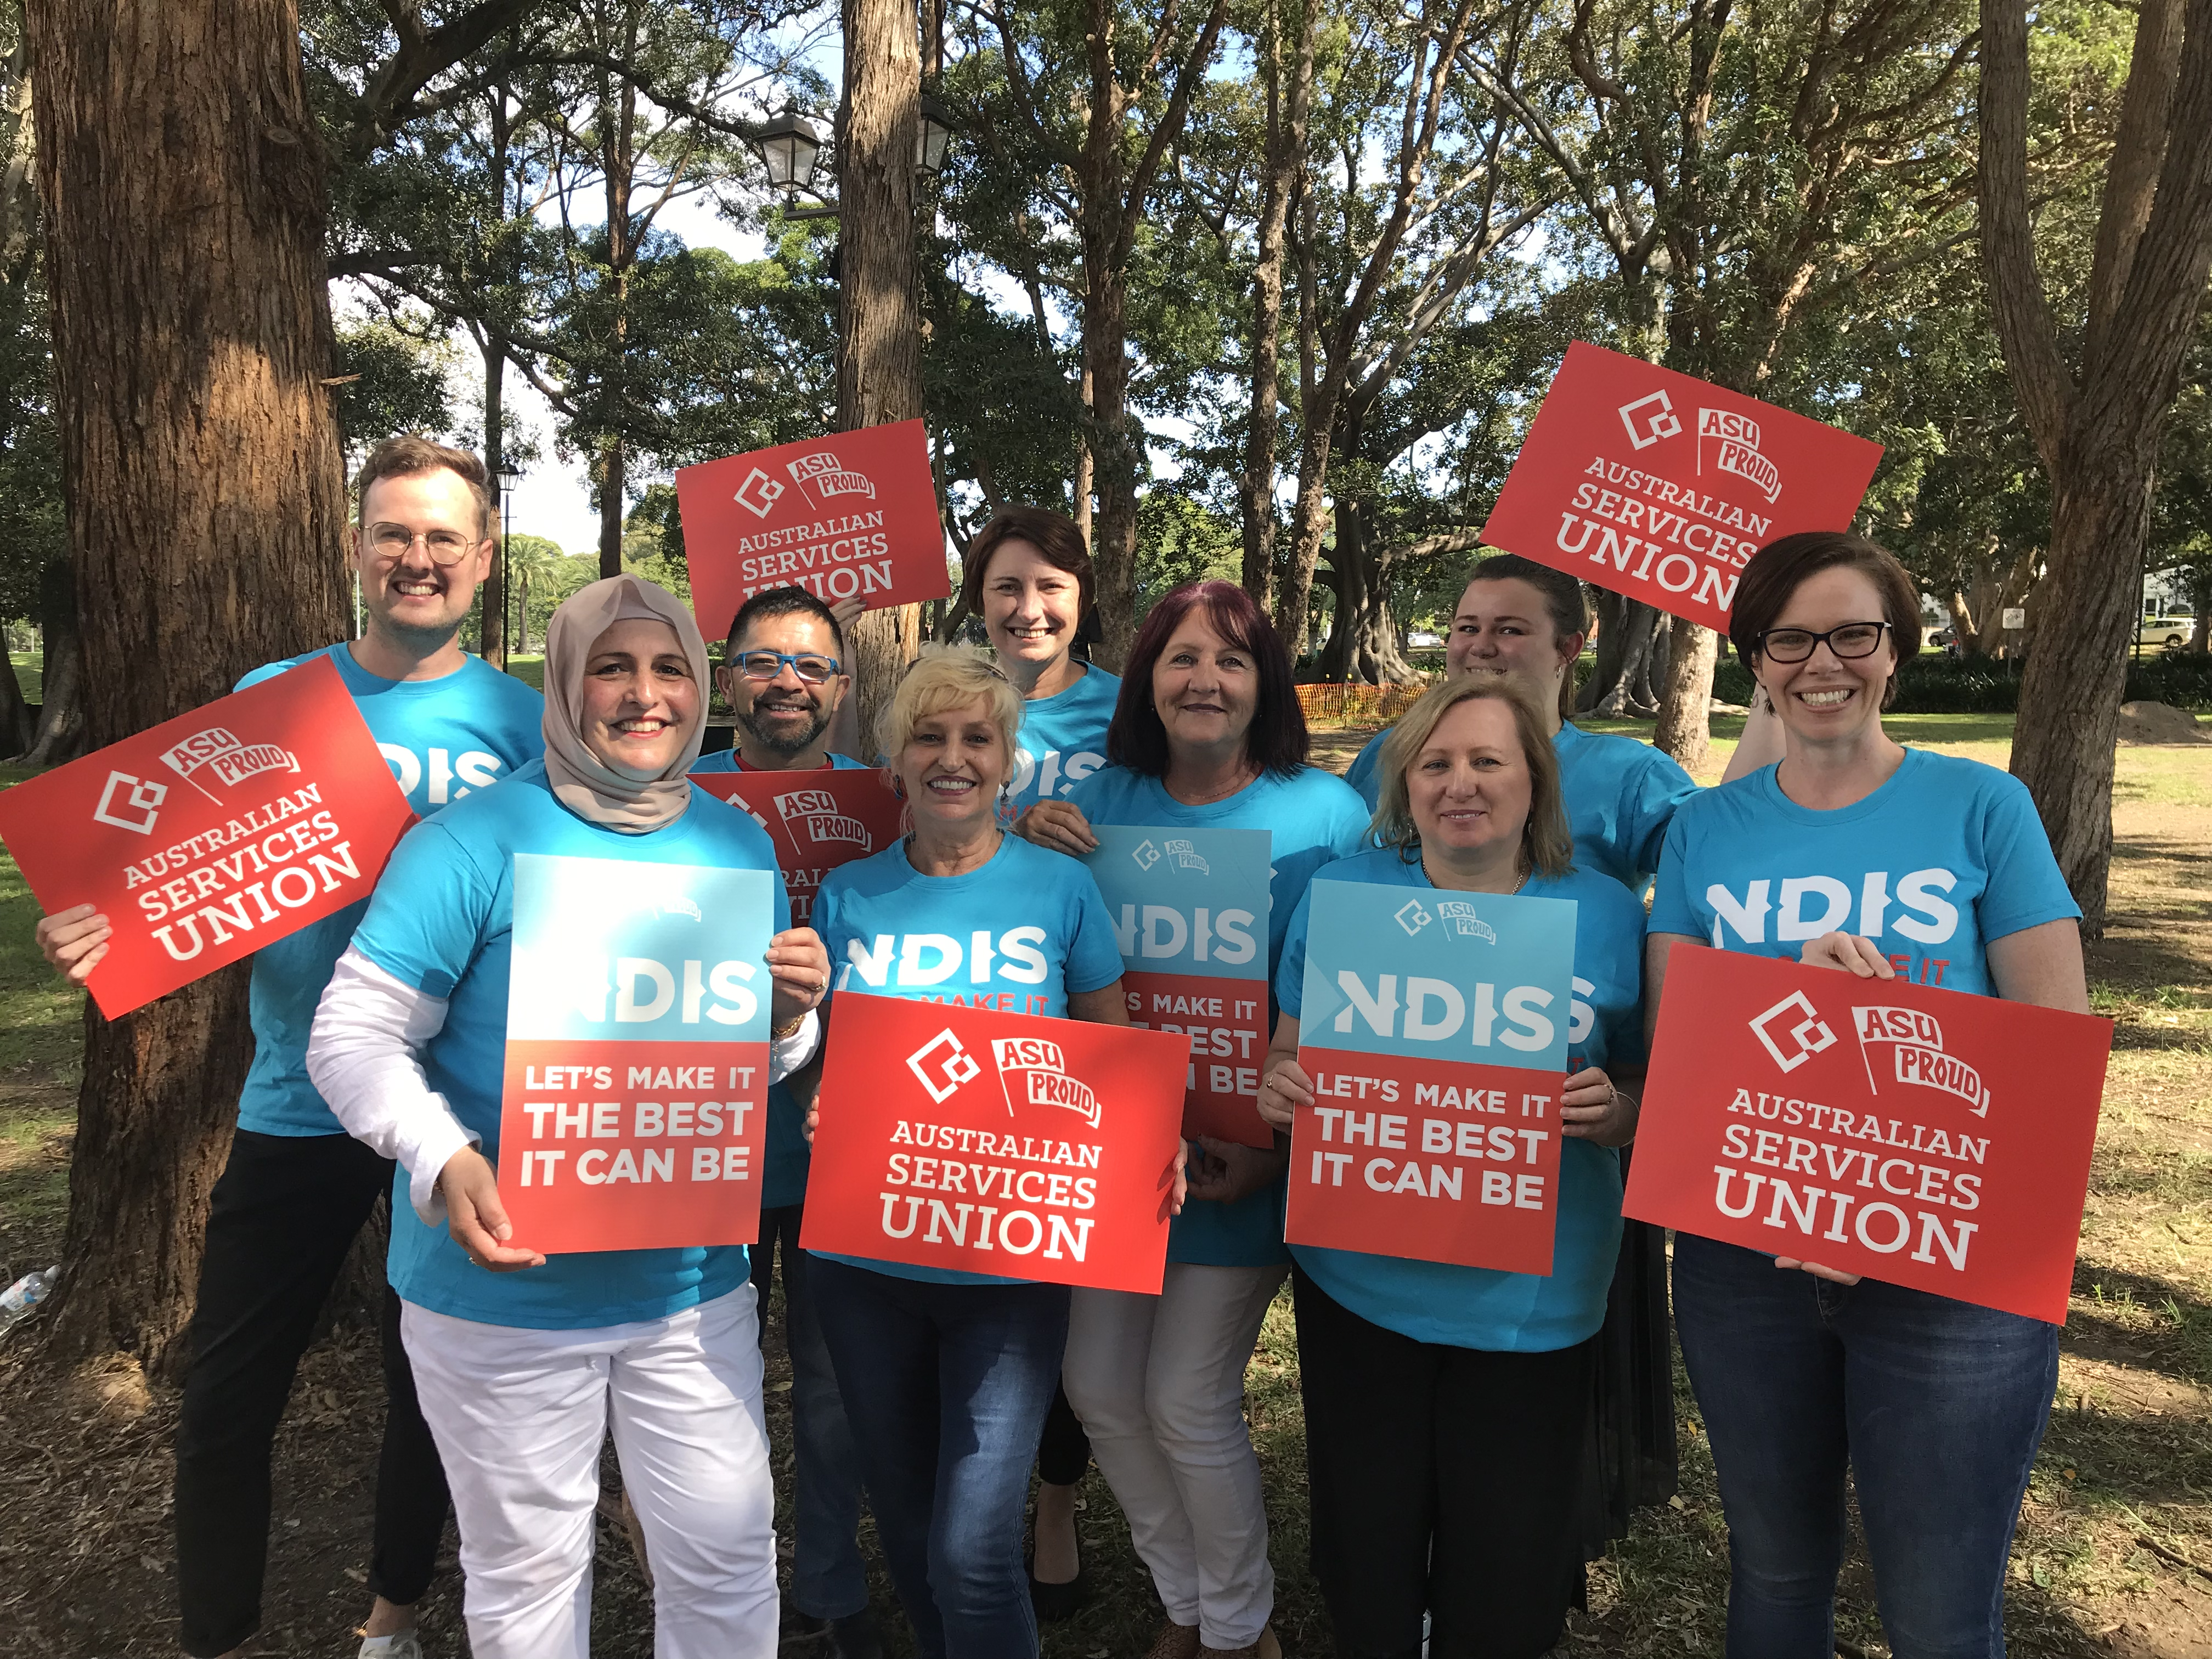 Union Members campaigning for the best NDIS